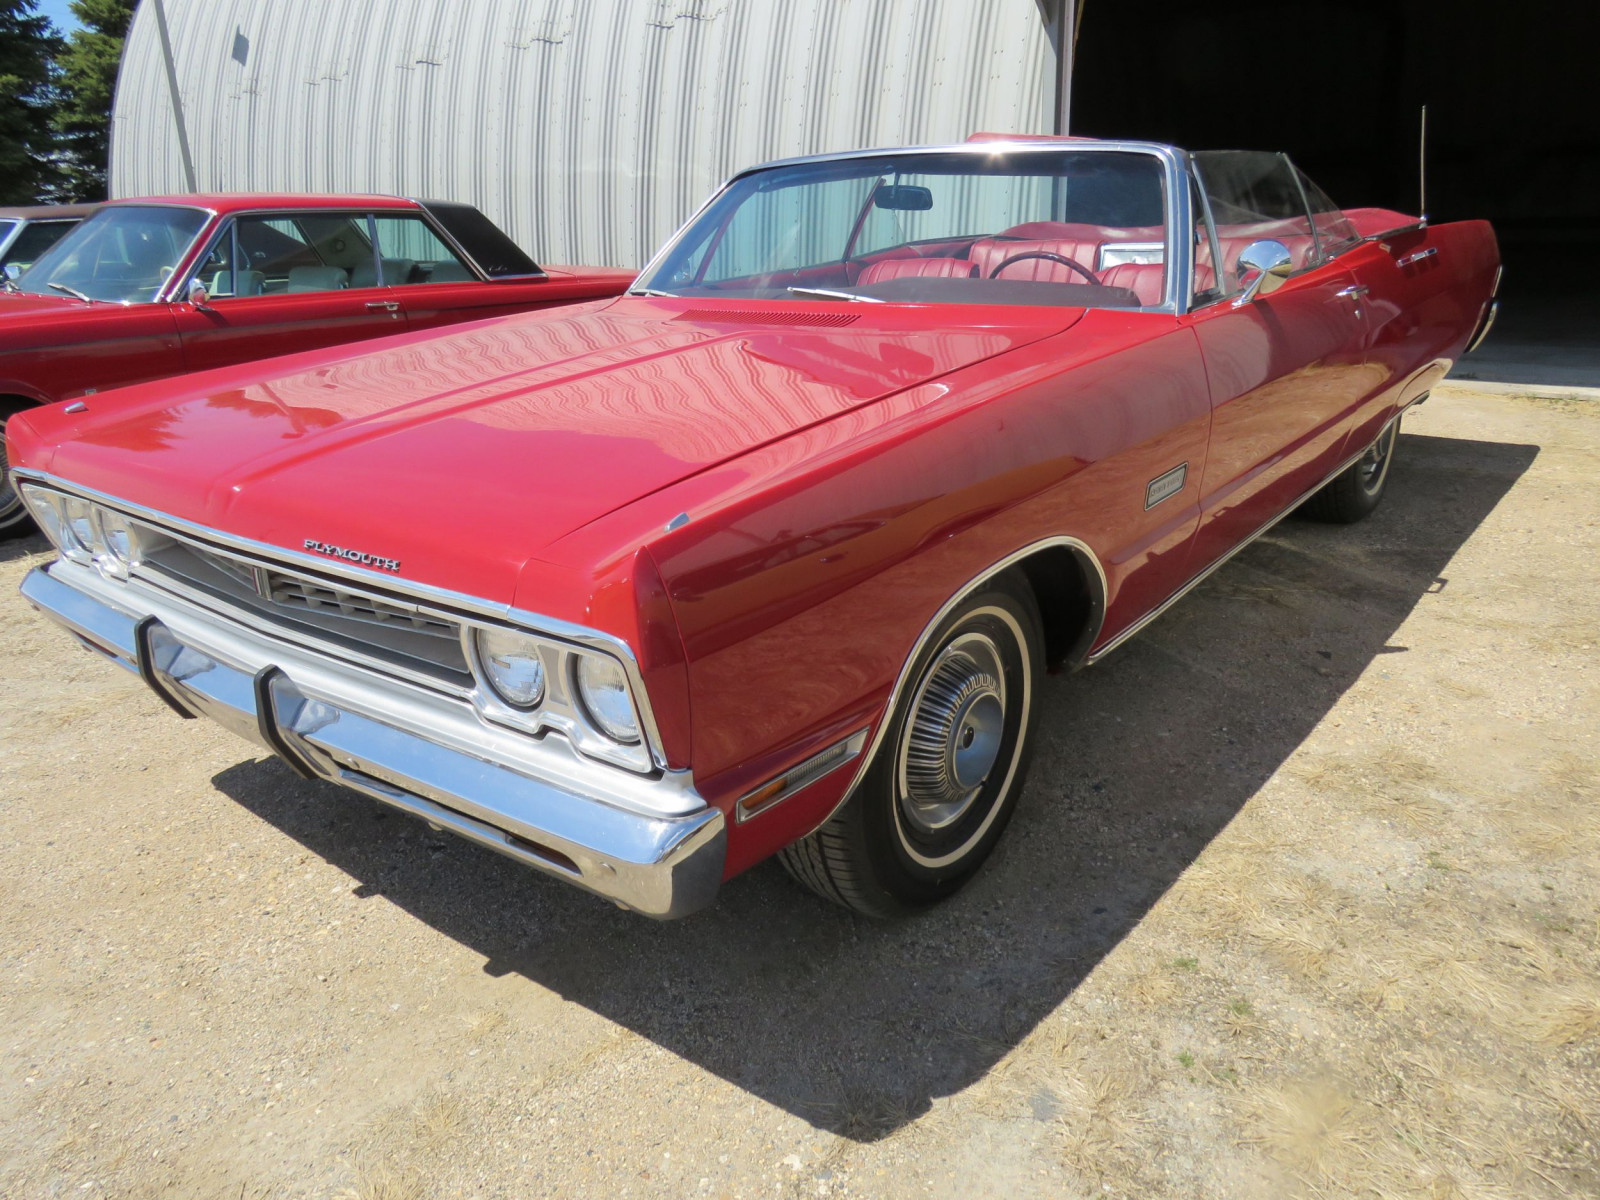 1969 Plymouth Sport Fury Convertible - Image 6